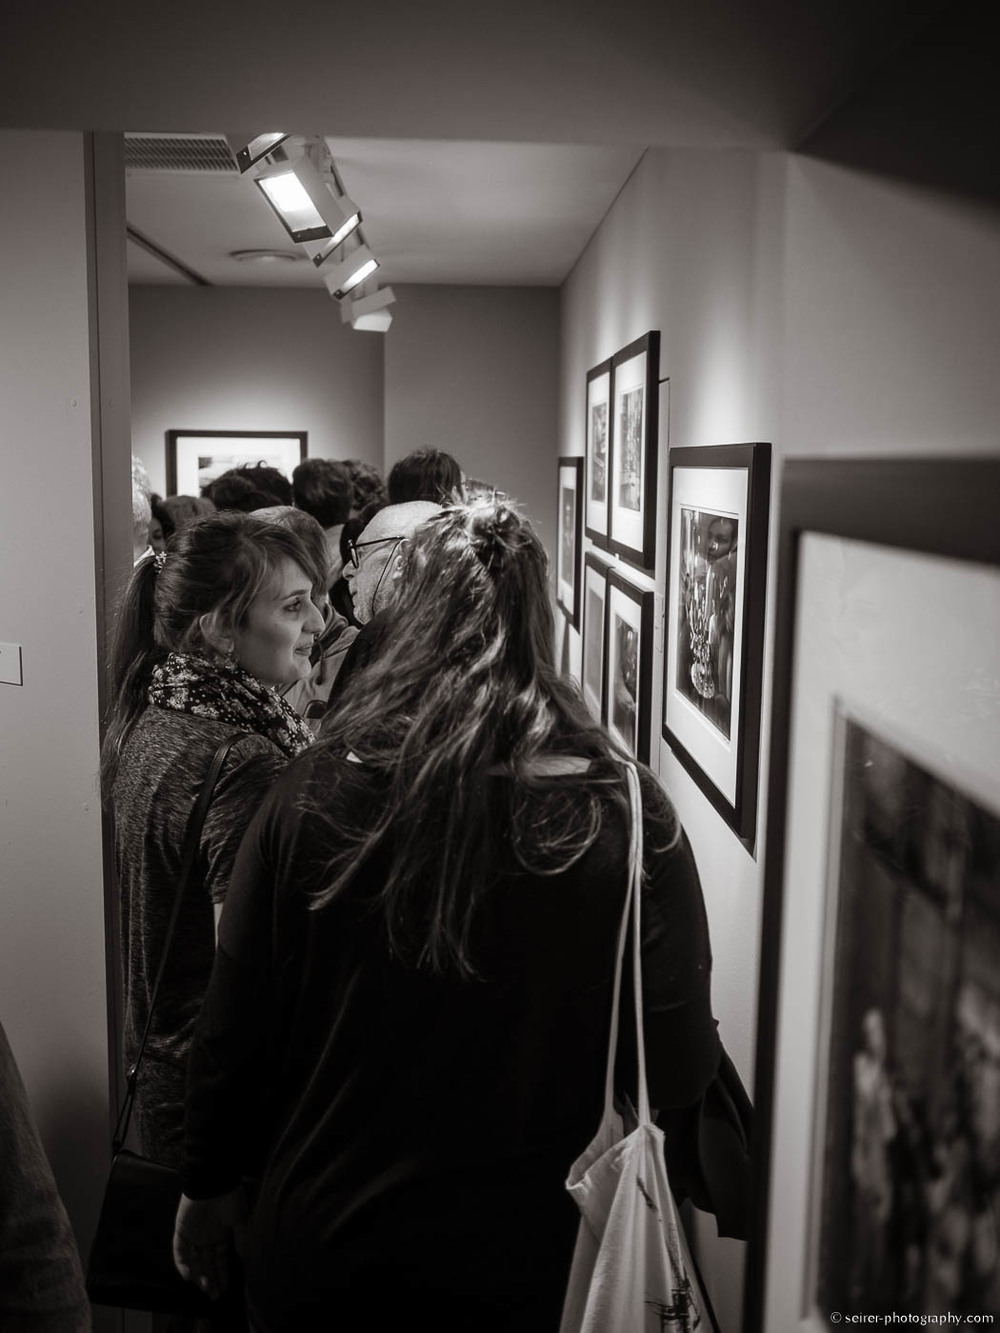 2015-09-22_Vernissage_Elliott_Erwitt-4246.jpg